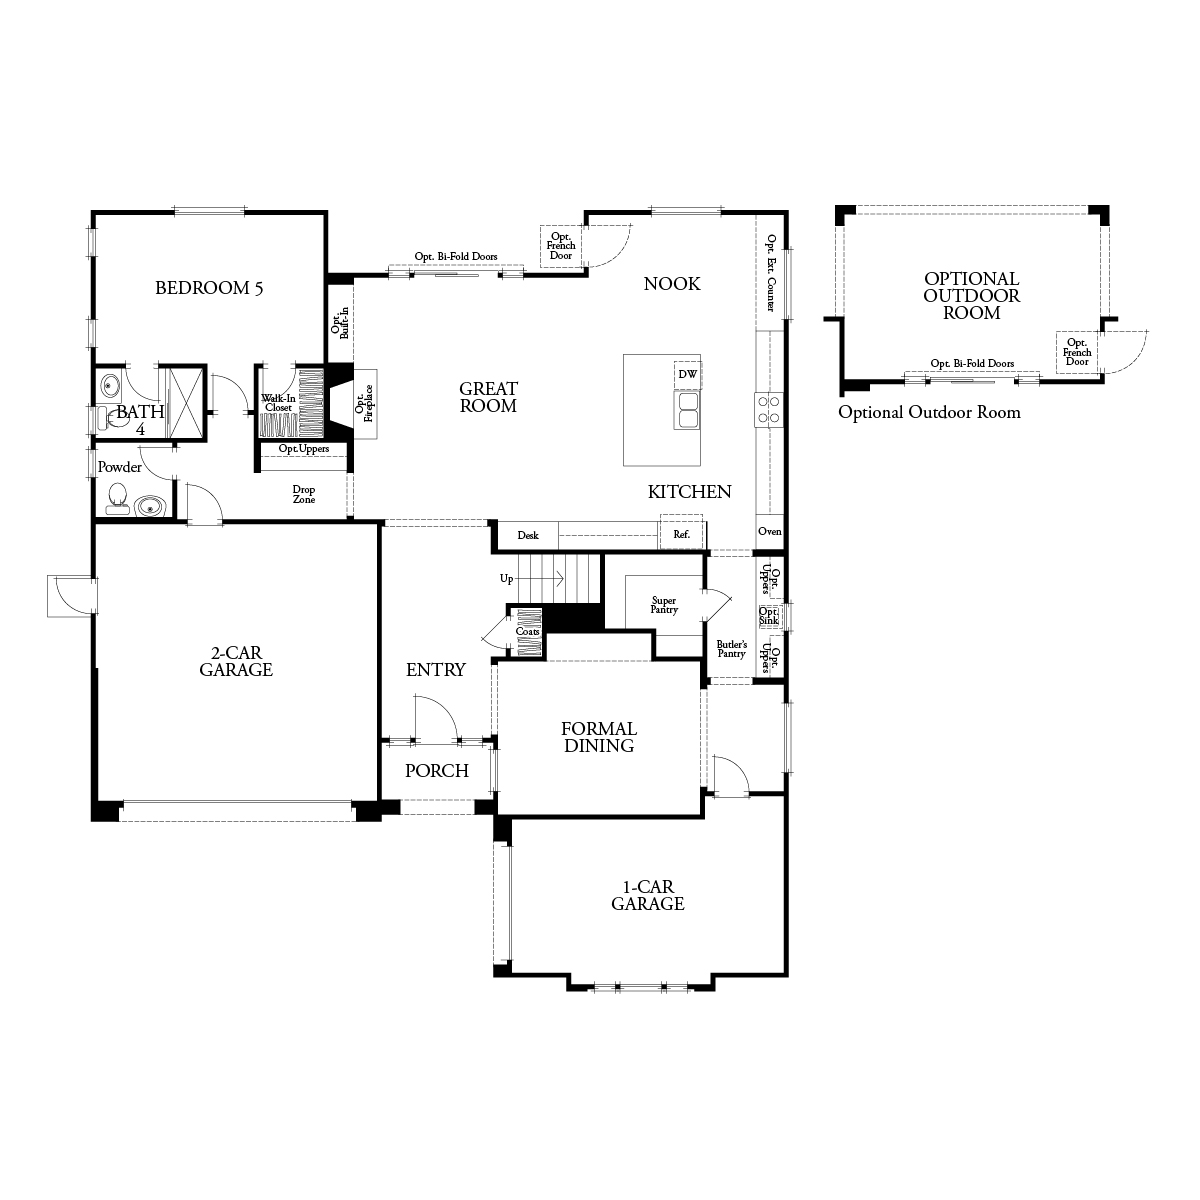 First floor residence 3 floor plan | Mataro at Glen Loma Ranch in Gilroy, CA | Brookfield Residential